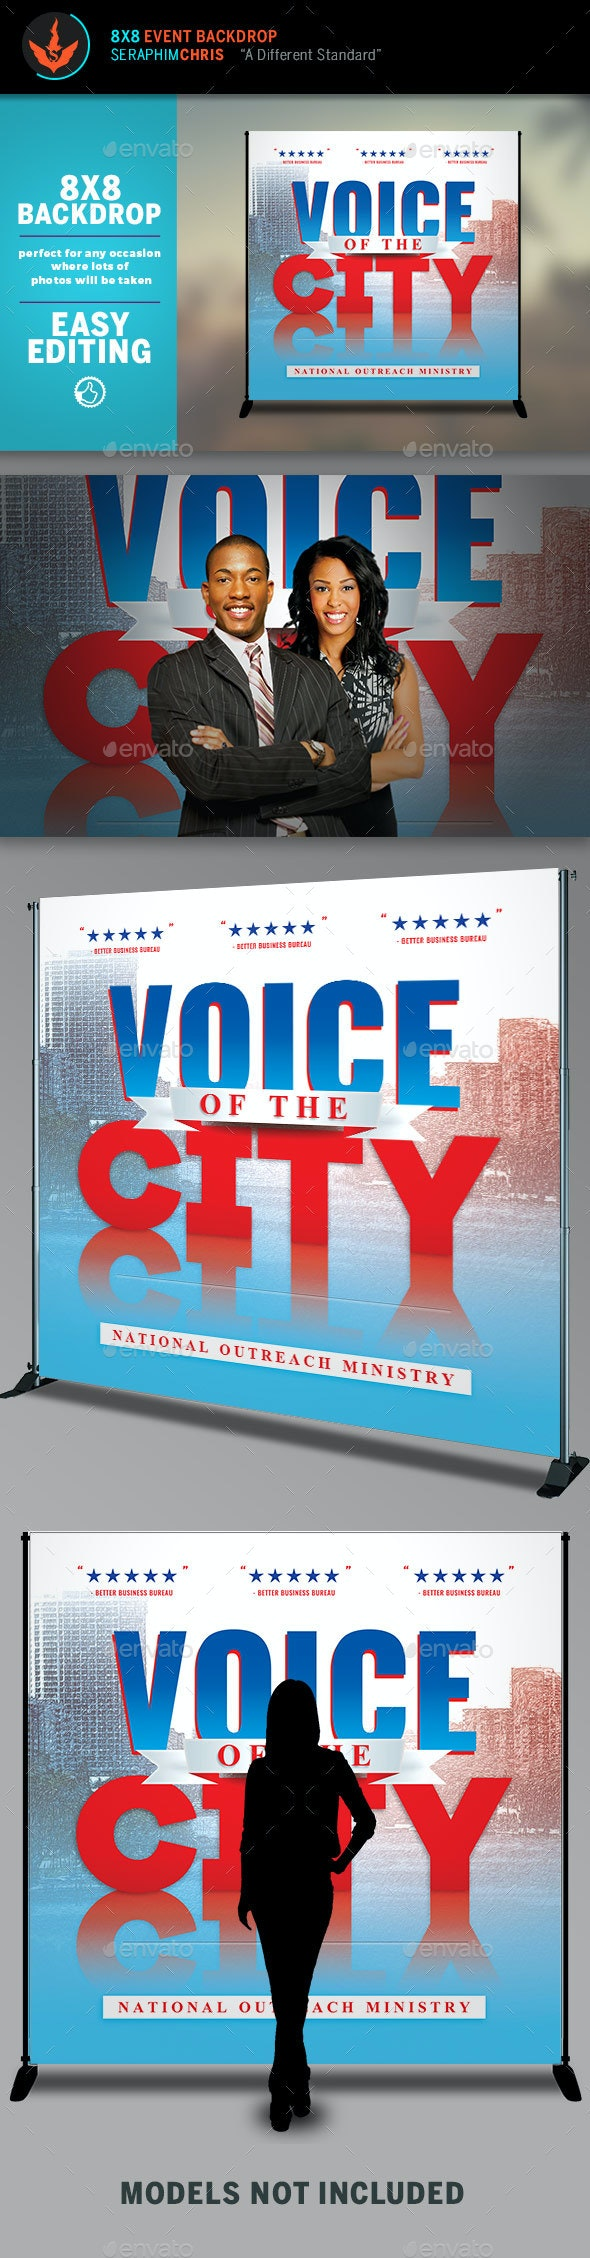 Voice of the City Charity Backdrop Template - Signage Print Templates